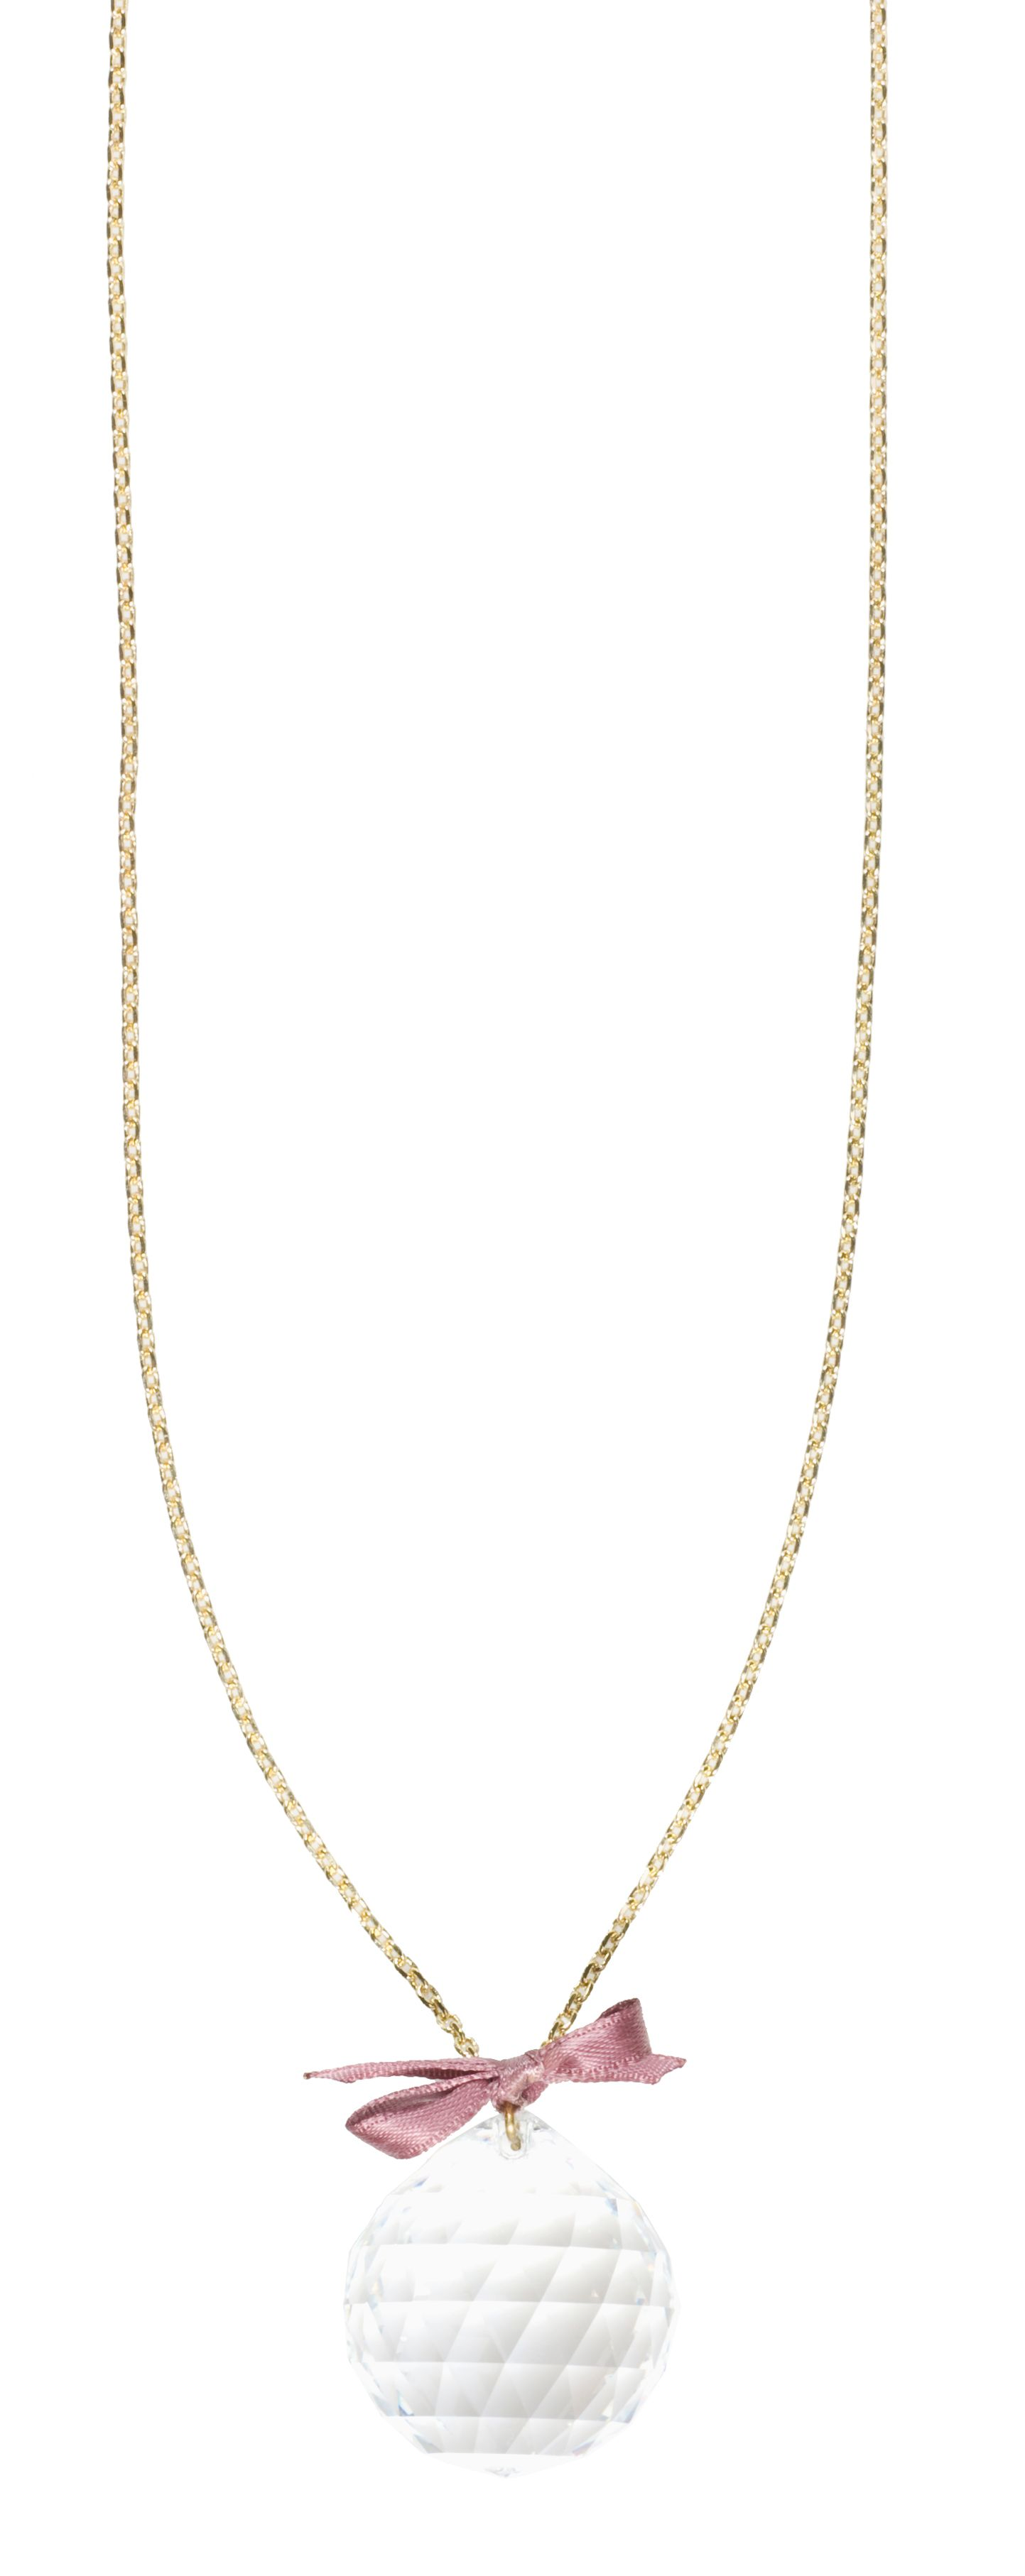 Martine Wester Pendant Necklace